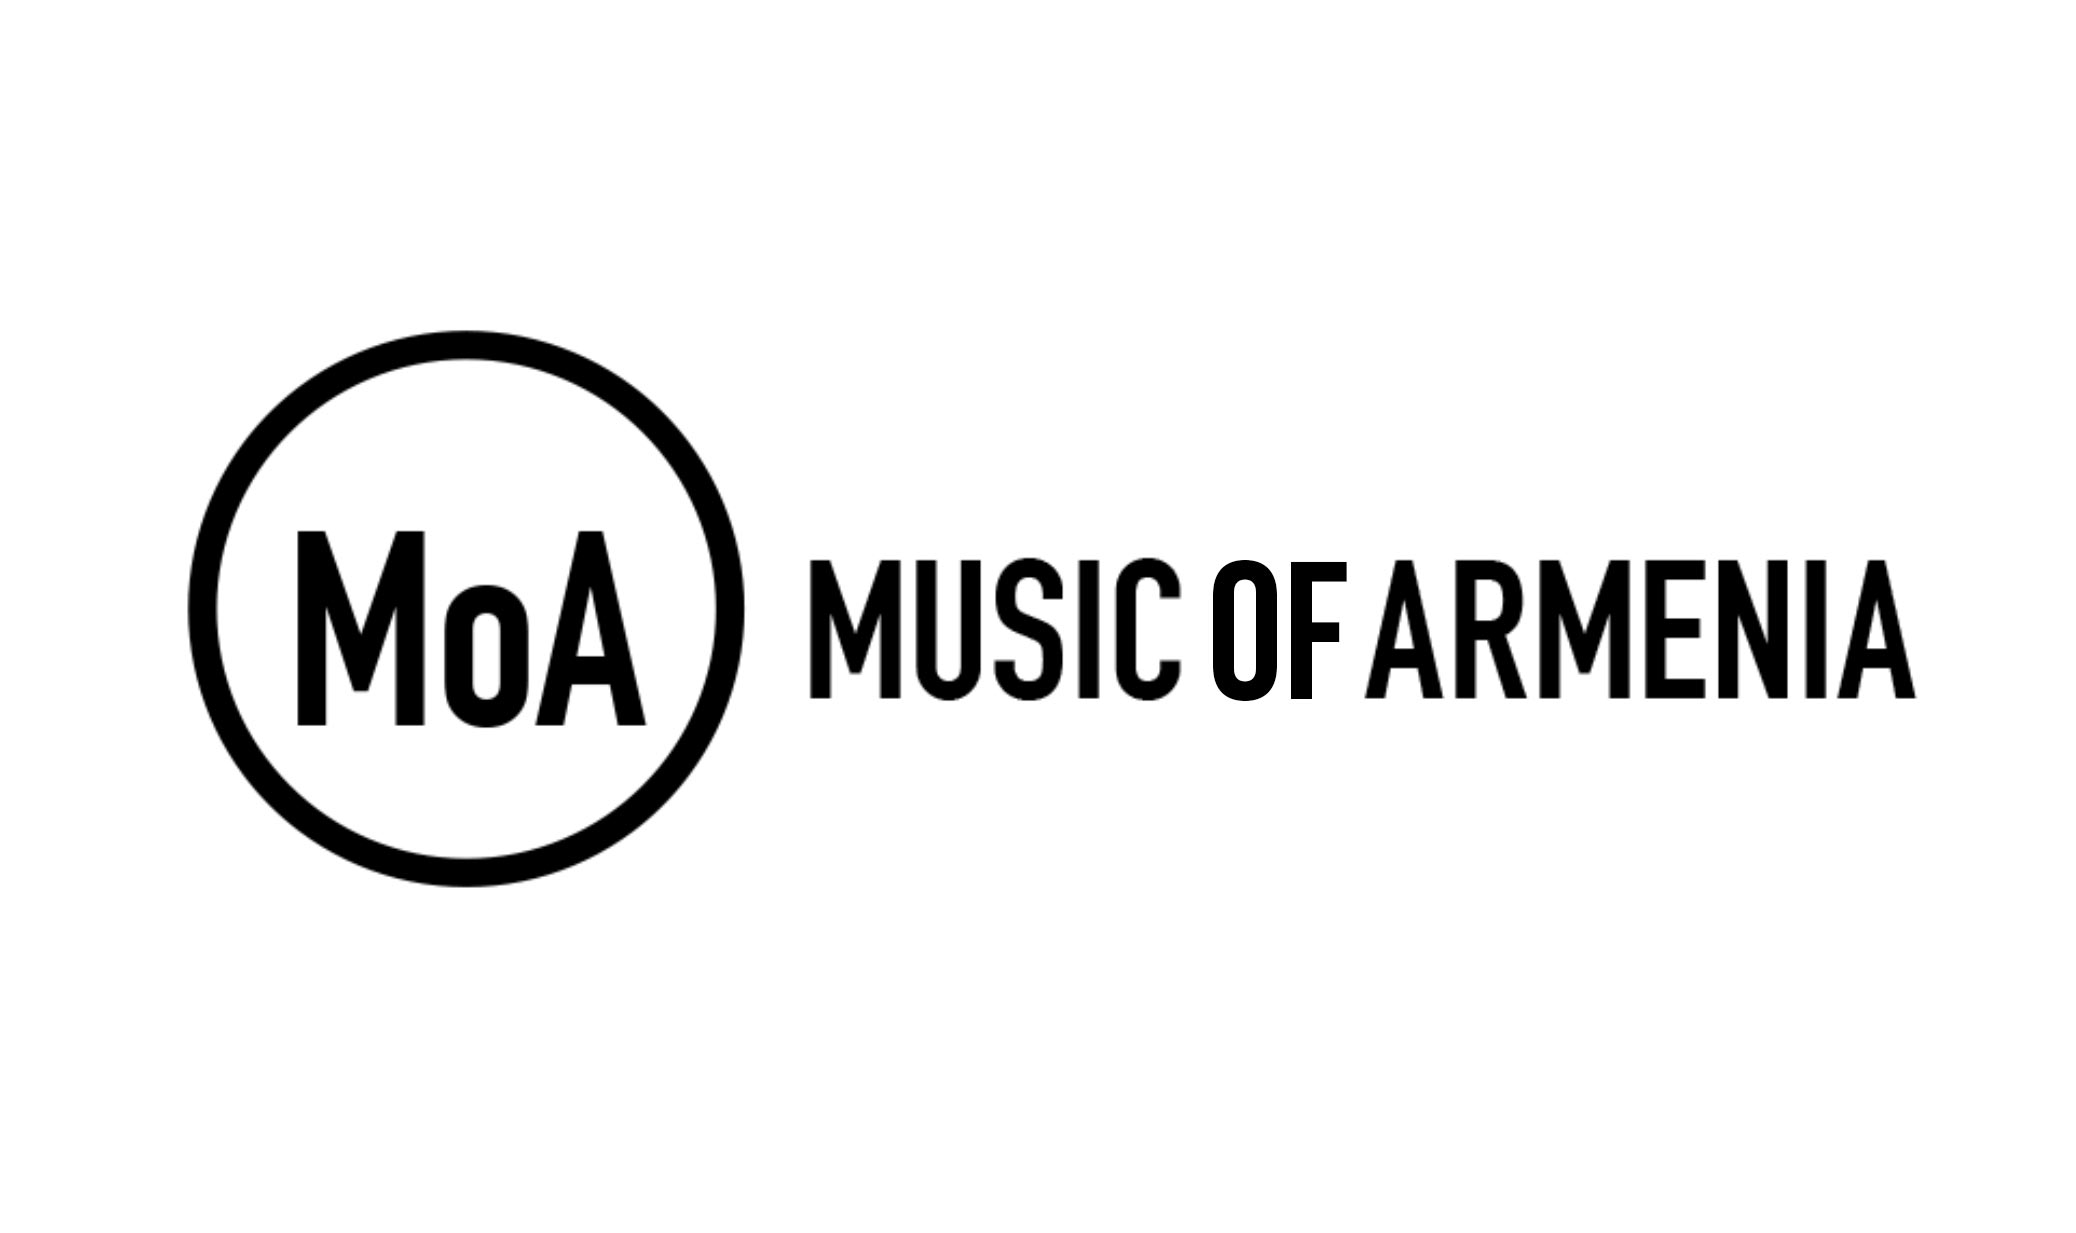 Music of Armenia Logo